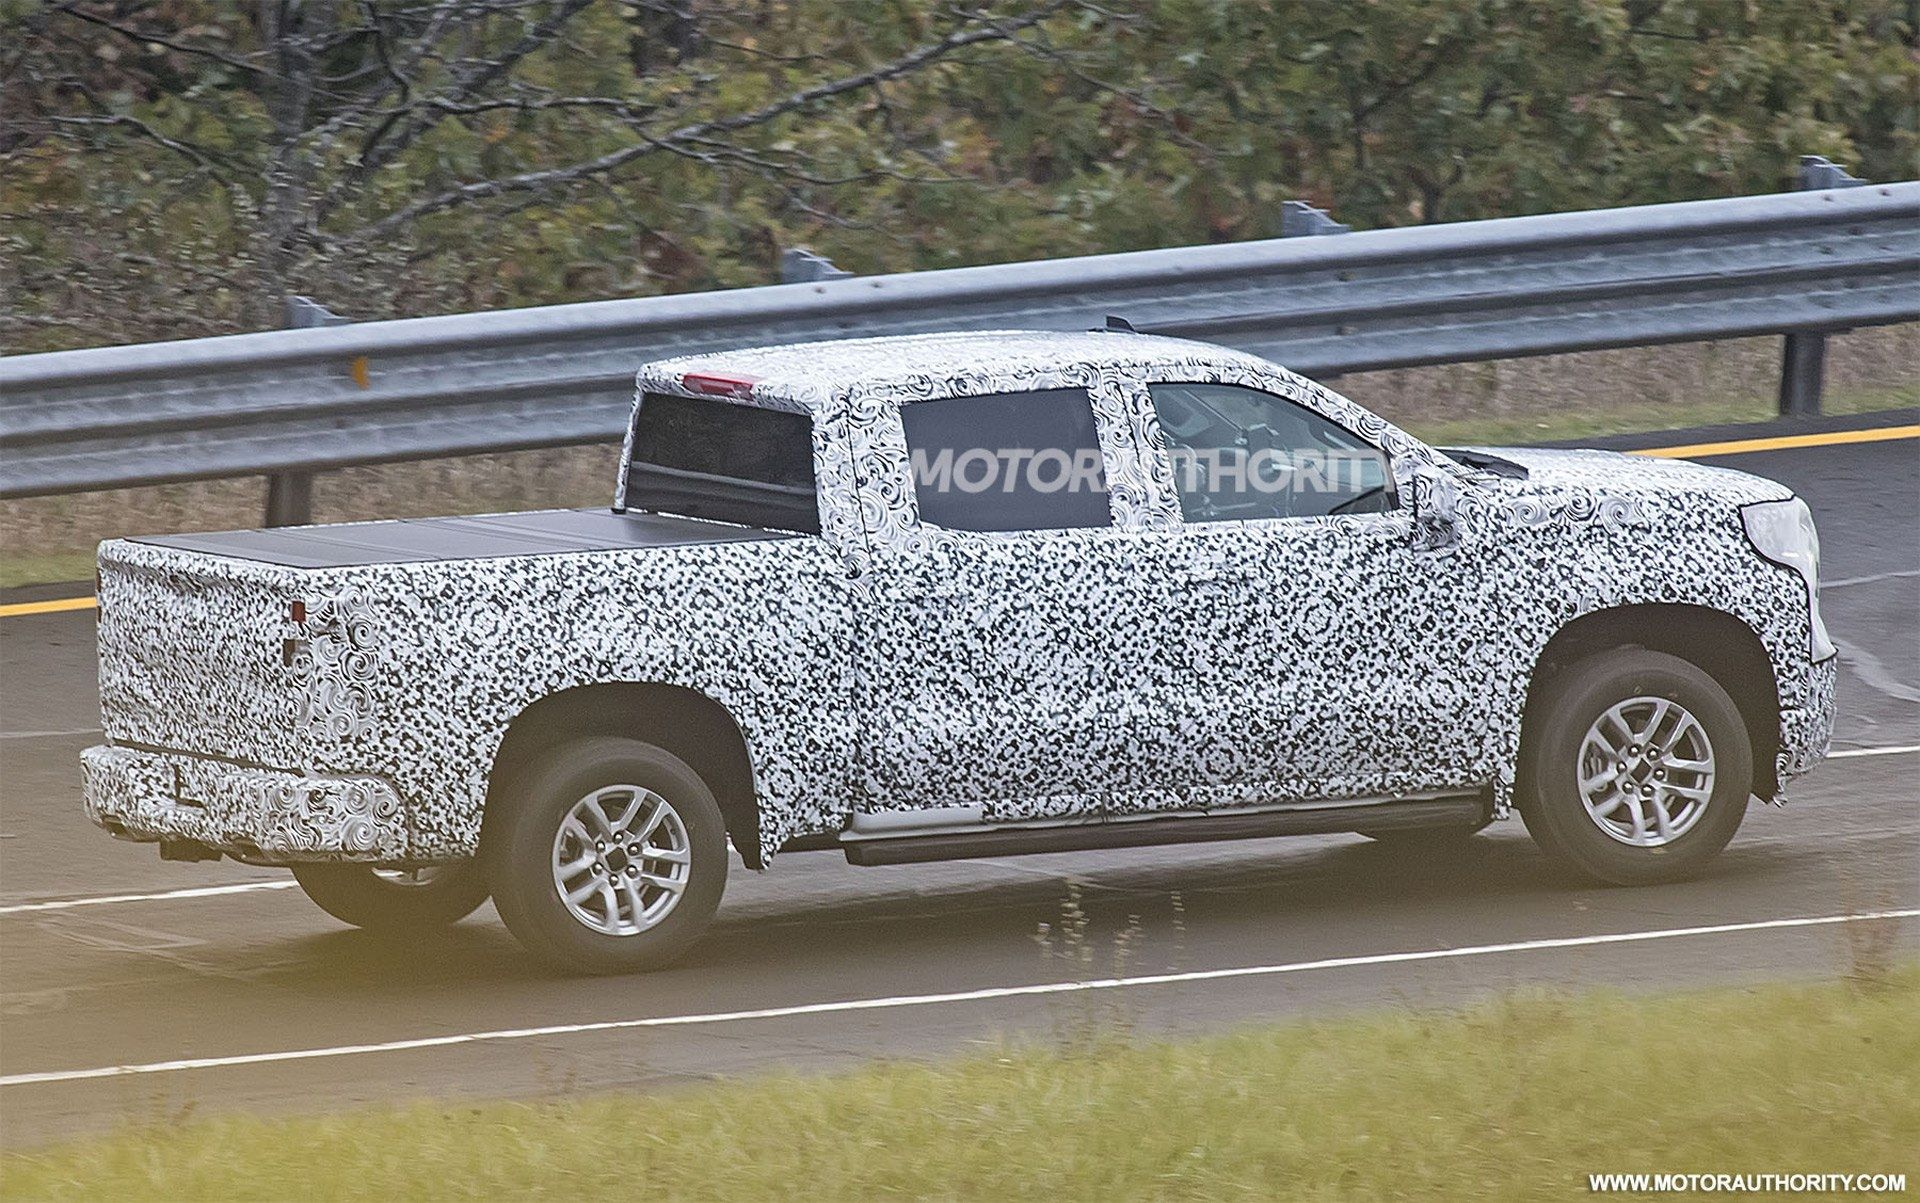 2019 Toyota Hilux Spy Shots Toyota Hilux Toyota Car Review